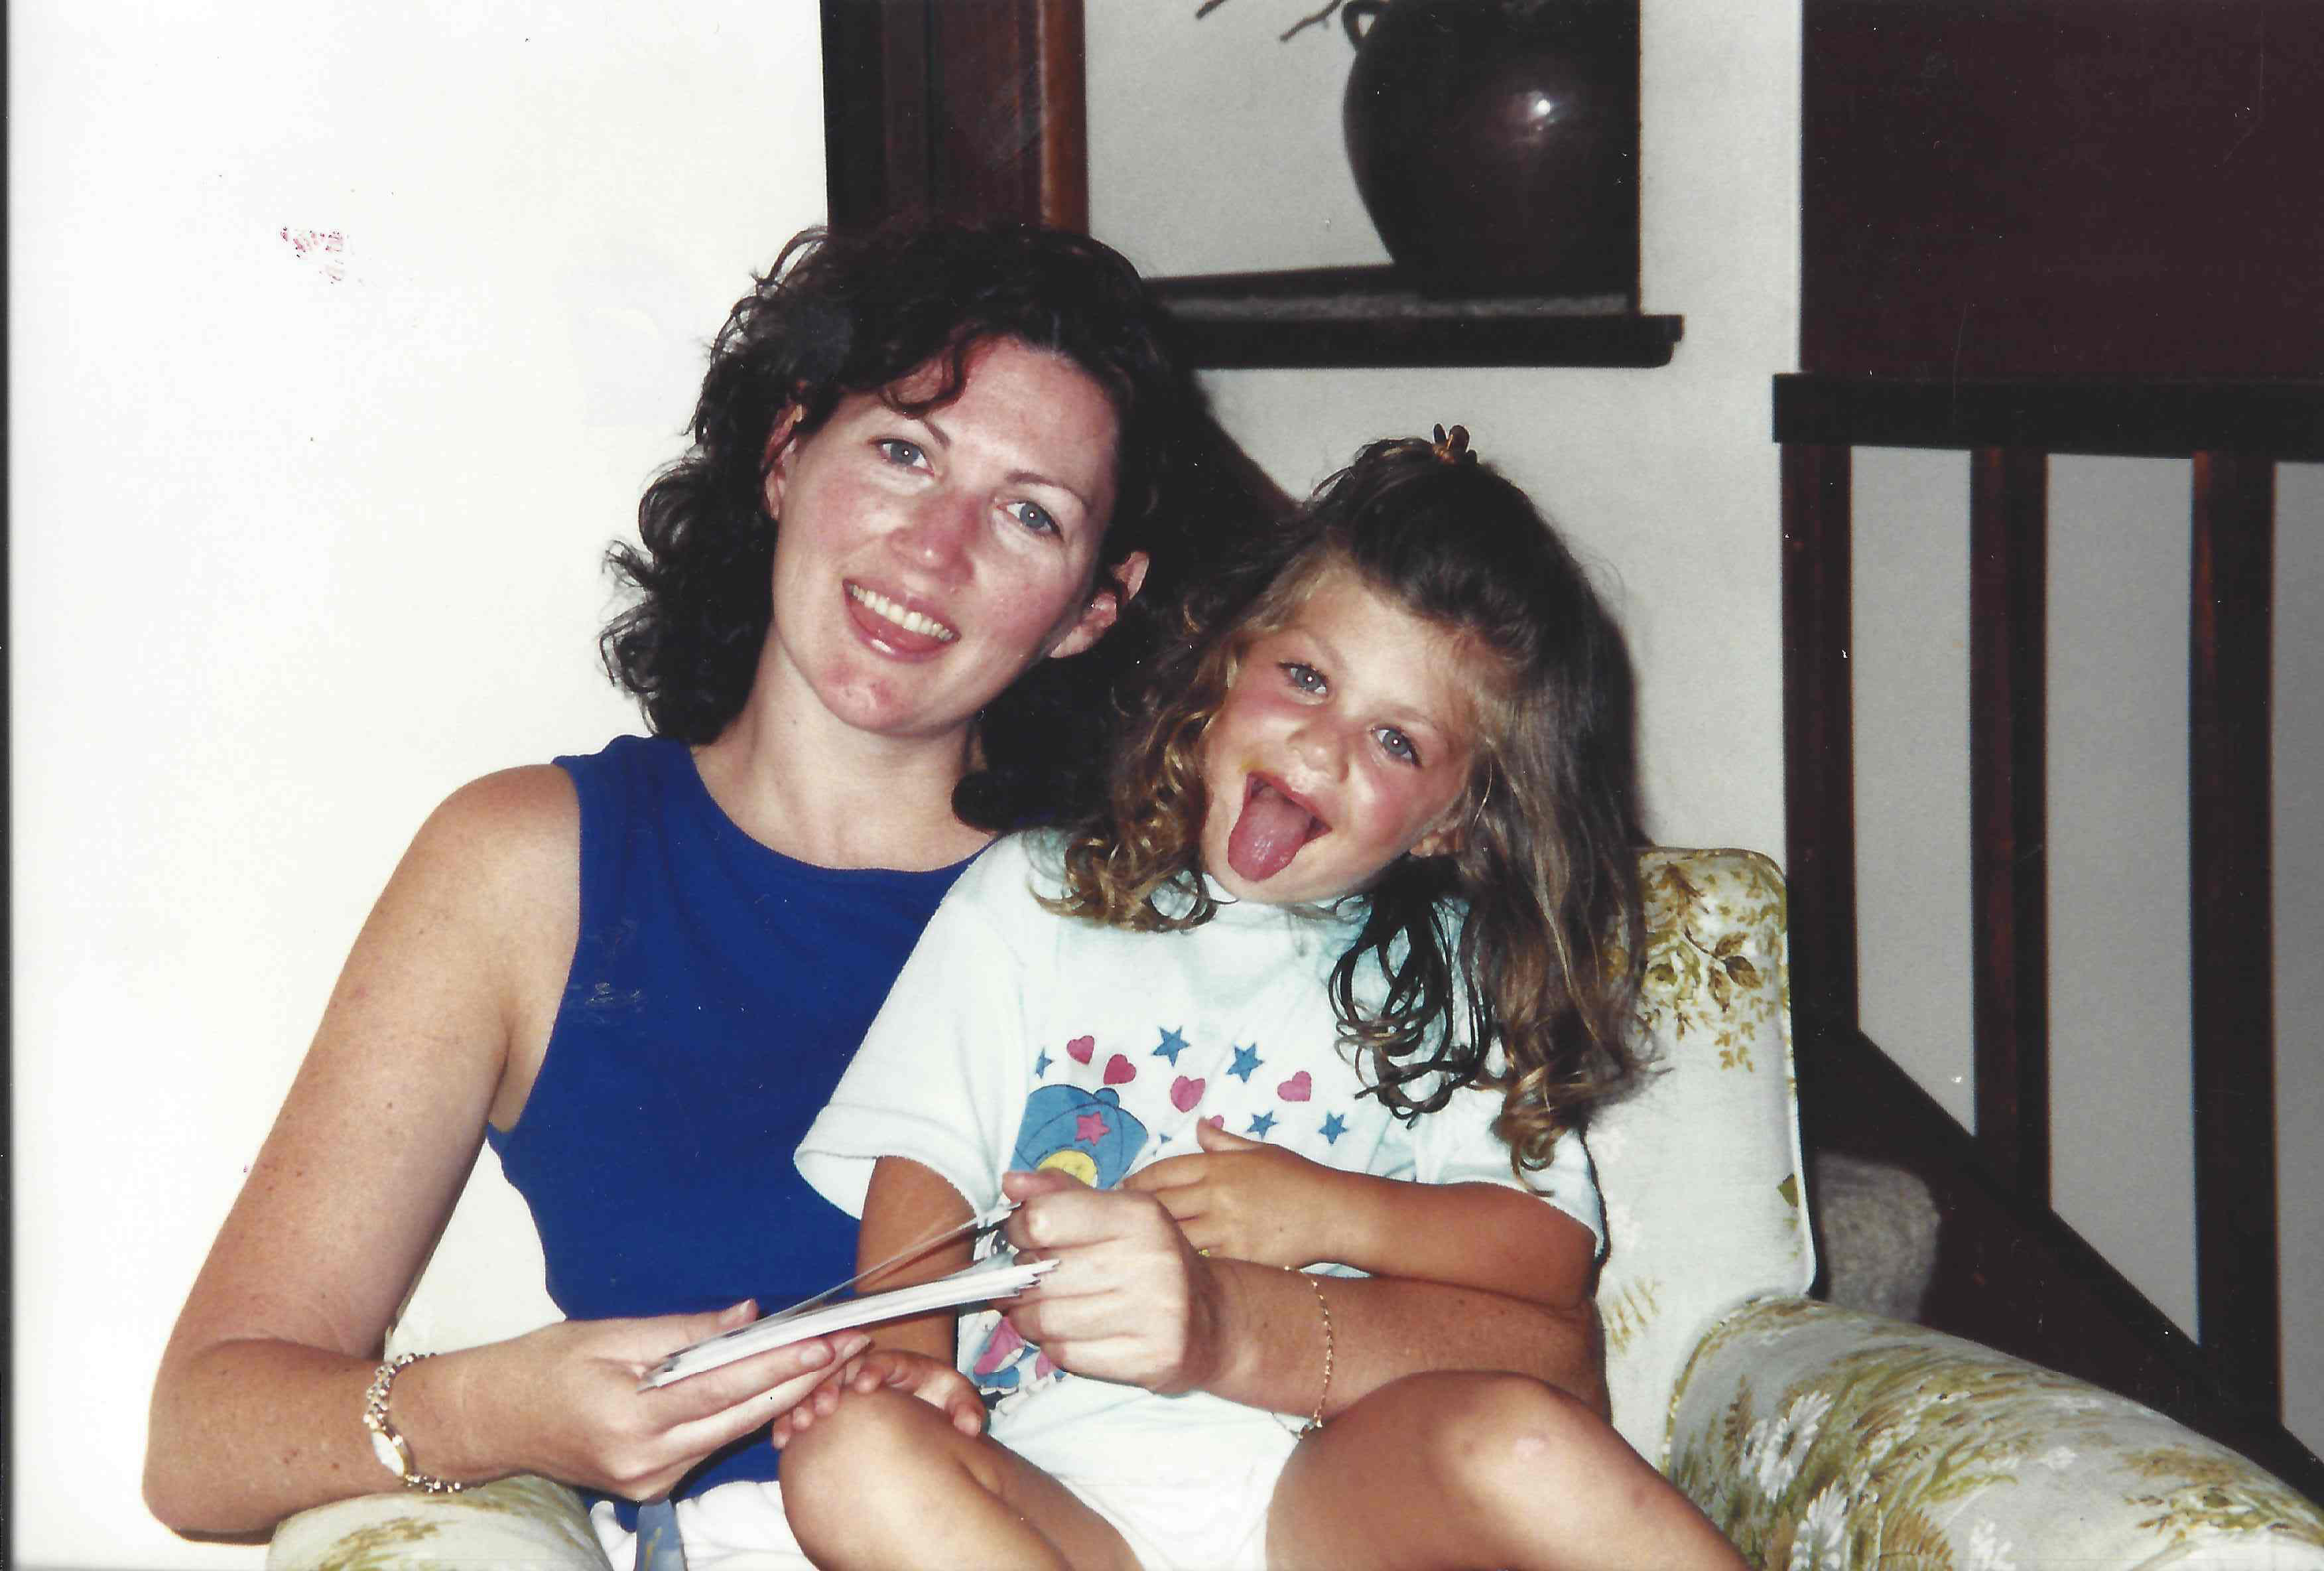 Lesley Thomas hangs out with her niece Jessica. Photo with kind permission of Joseph O'Keefe